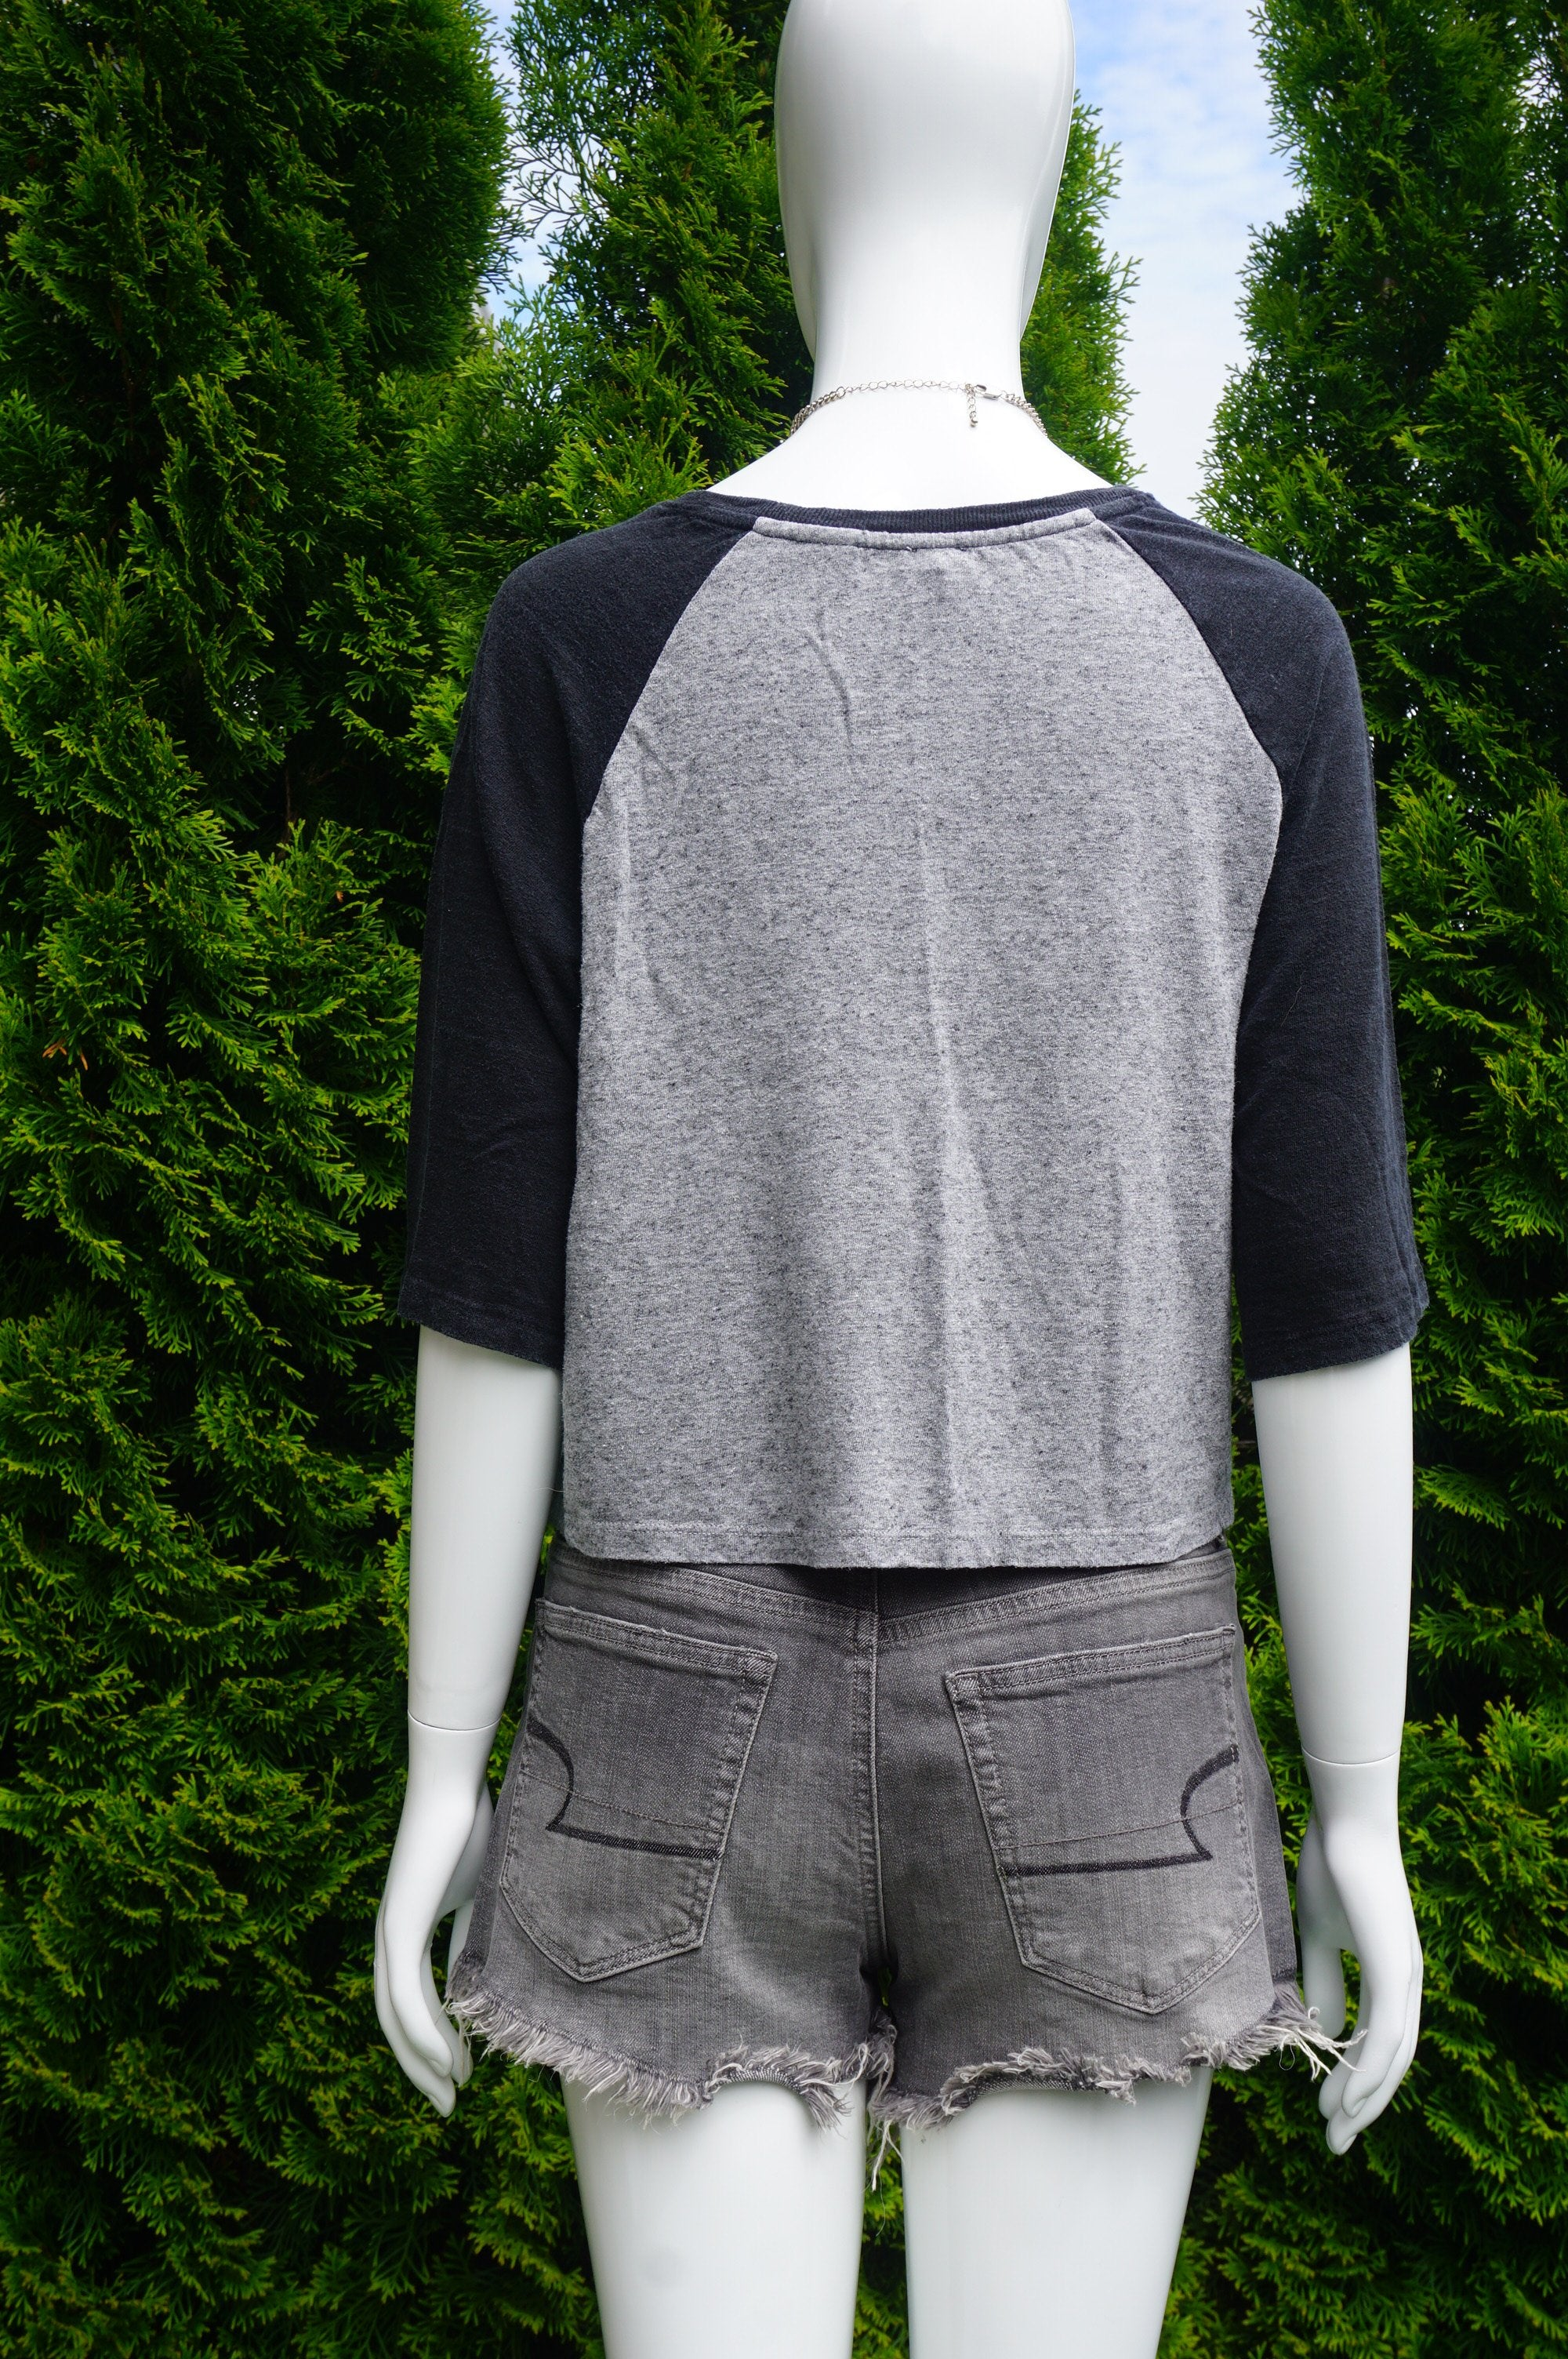 Levi's Cropped Black and Grey Top, Casual Levi's cropped top to throw on for your errand runs!, Grey, Cotton, women's Tops, women's Grey Tops, Levi's women's Tops, comfy crop top, casual top, mid sleeve top